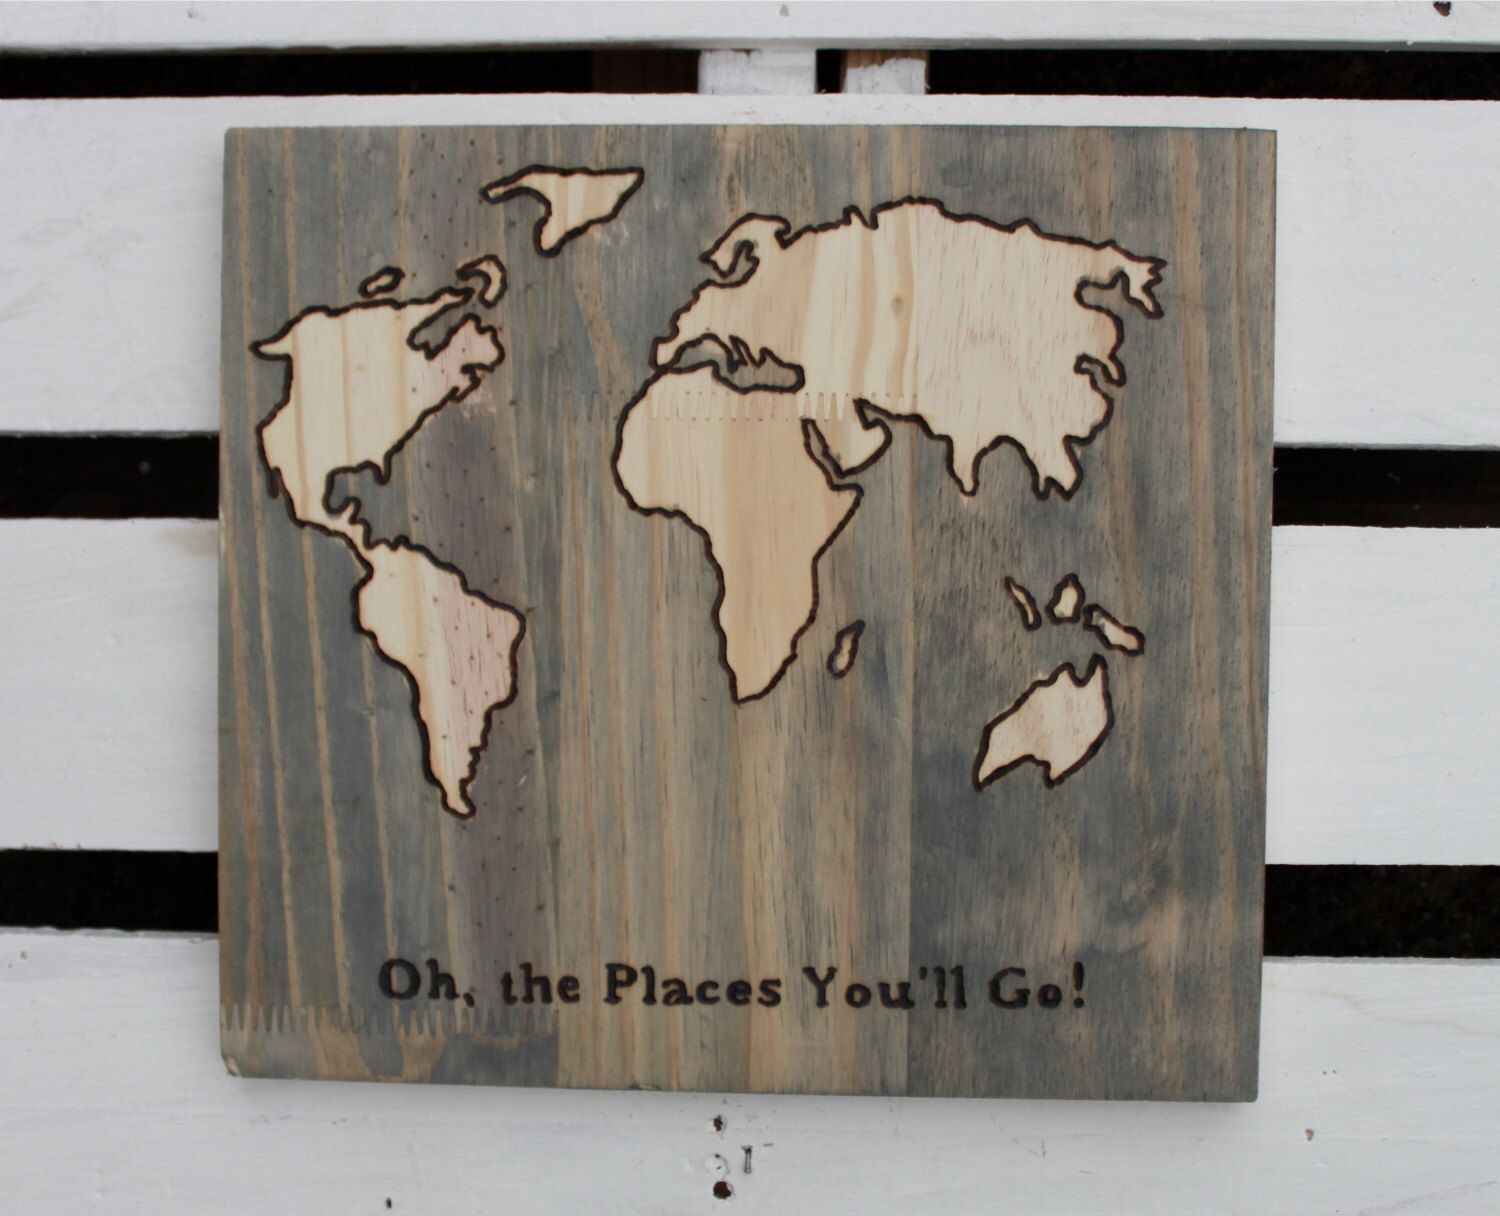 World map on wood nursery wall decor with dr seuss quote by world map on wood nursery wall decor with dr seuss quote by craftyhandsfullheart on etsy gumiabroncs Image collections